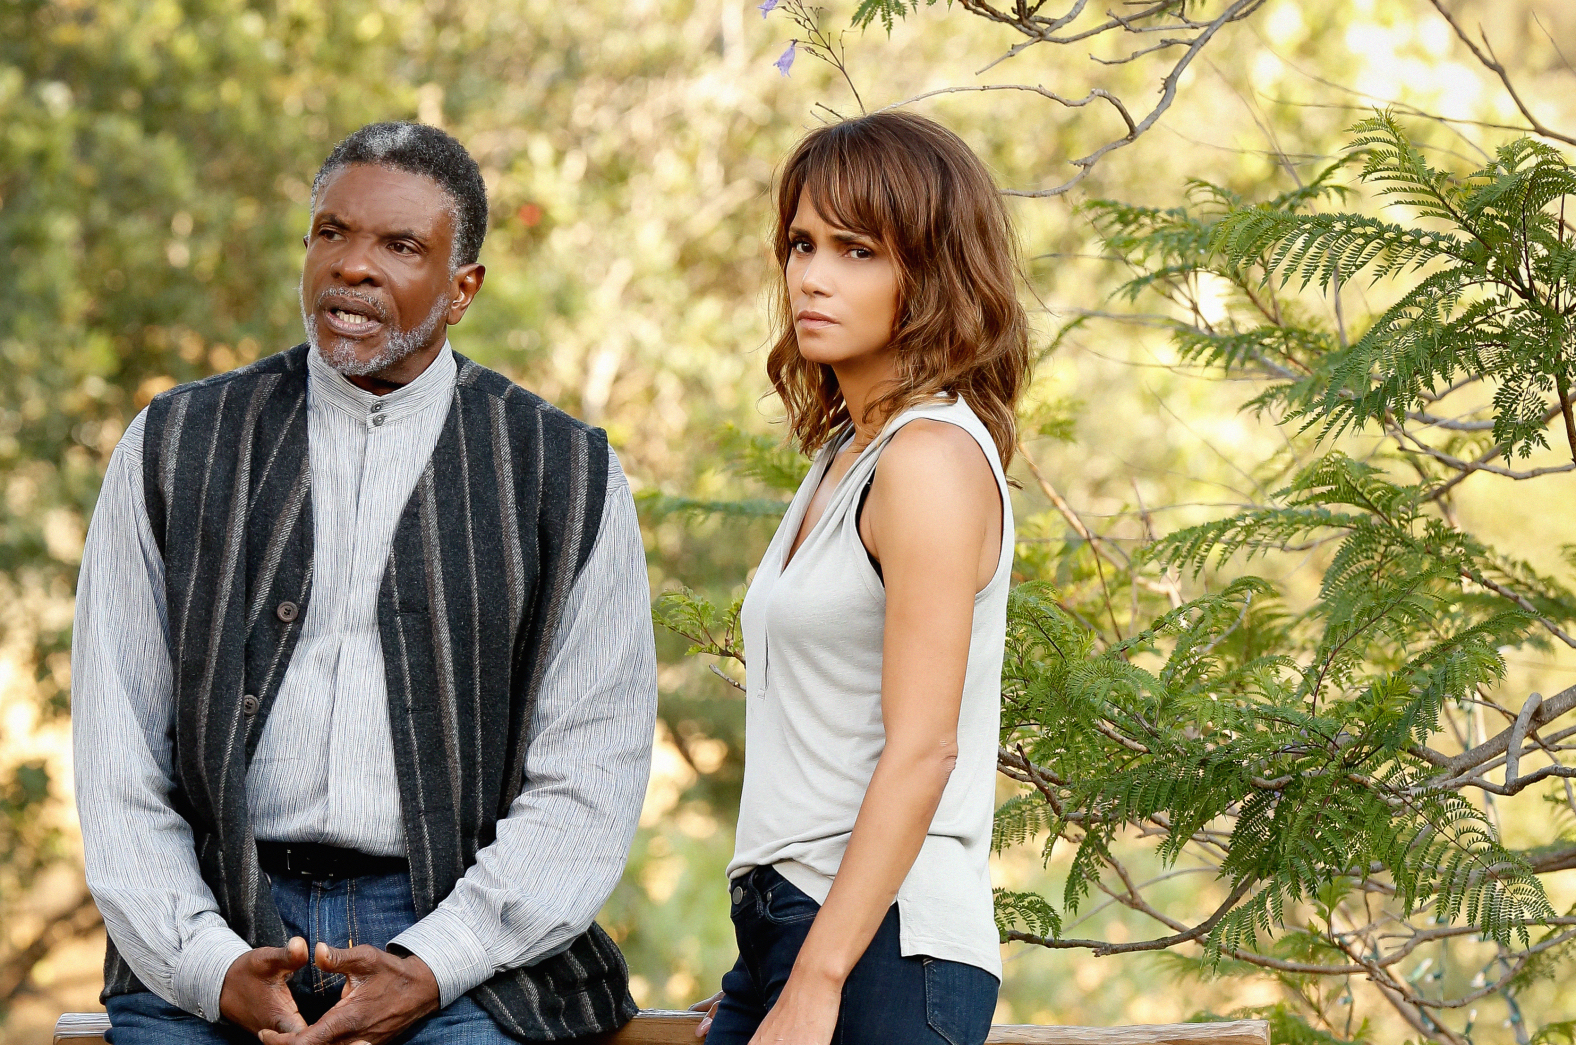 Keith David as Calderon and Halle Berry as Molly Woods.